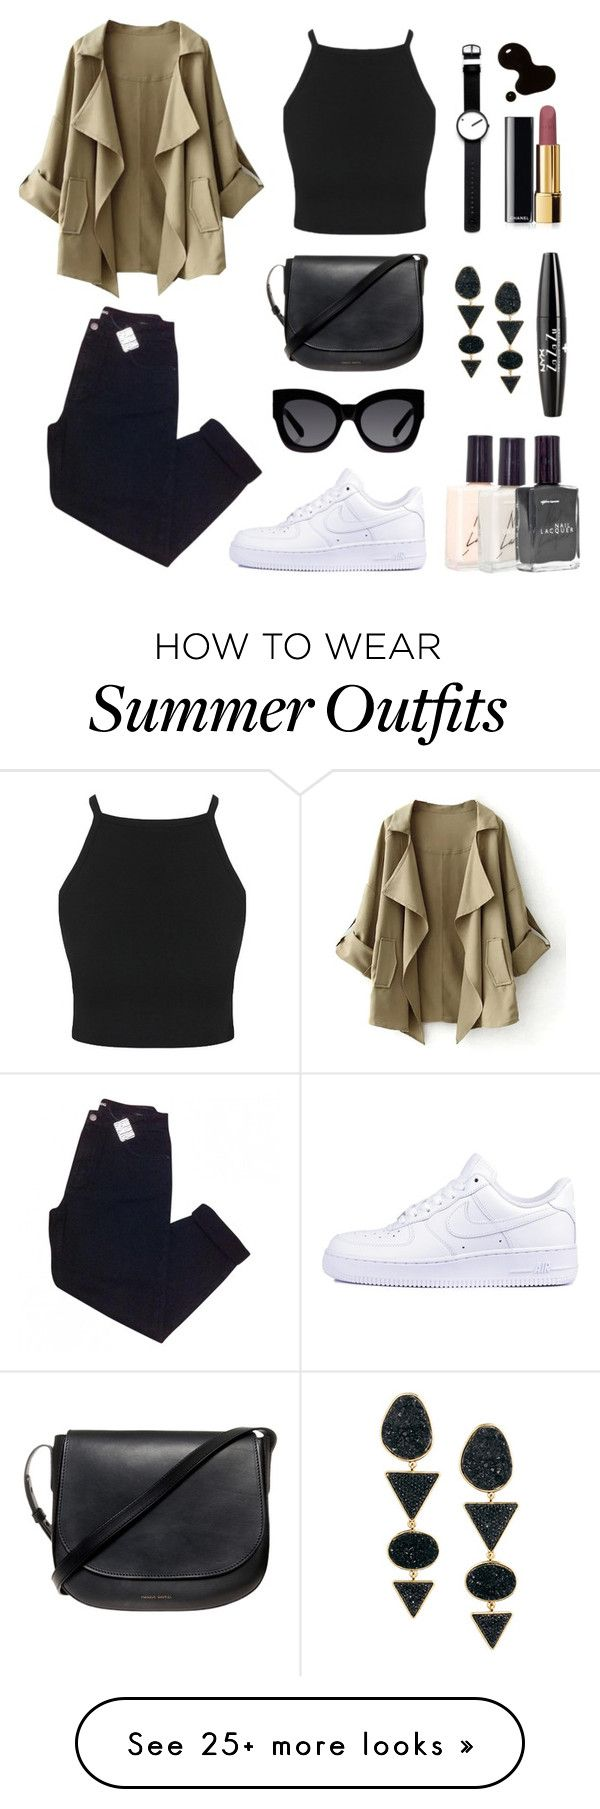 """""""Untitled #215"""" by lilymadelyn on Polyvore featuring NIKE, Mansur Gavriel, Urban Outfitters, Karen Walker, Rosendahl, American Apparel, H&M, Chanel and NYX"""